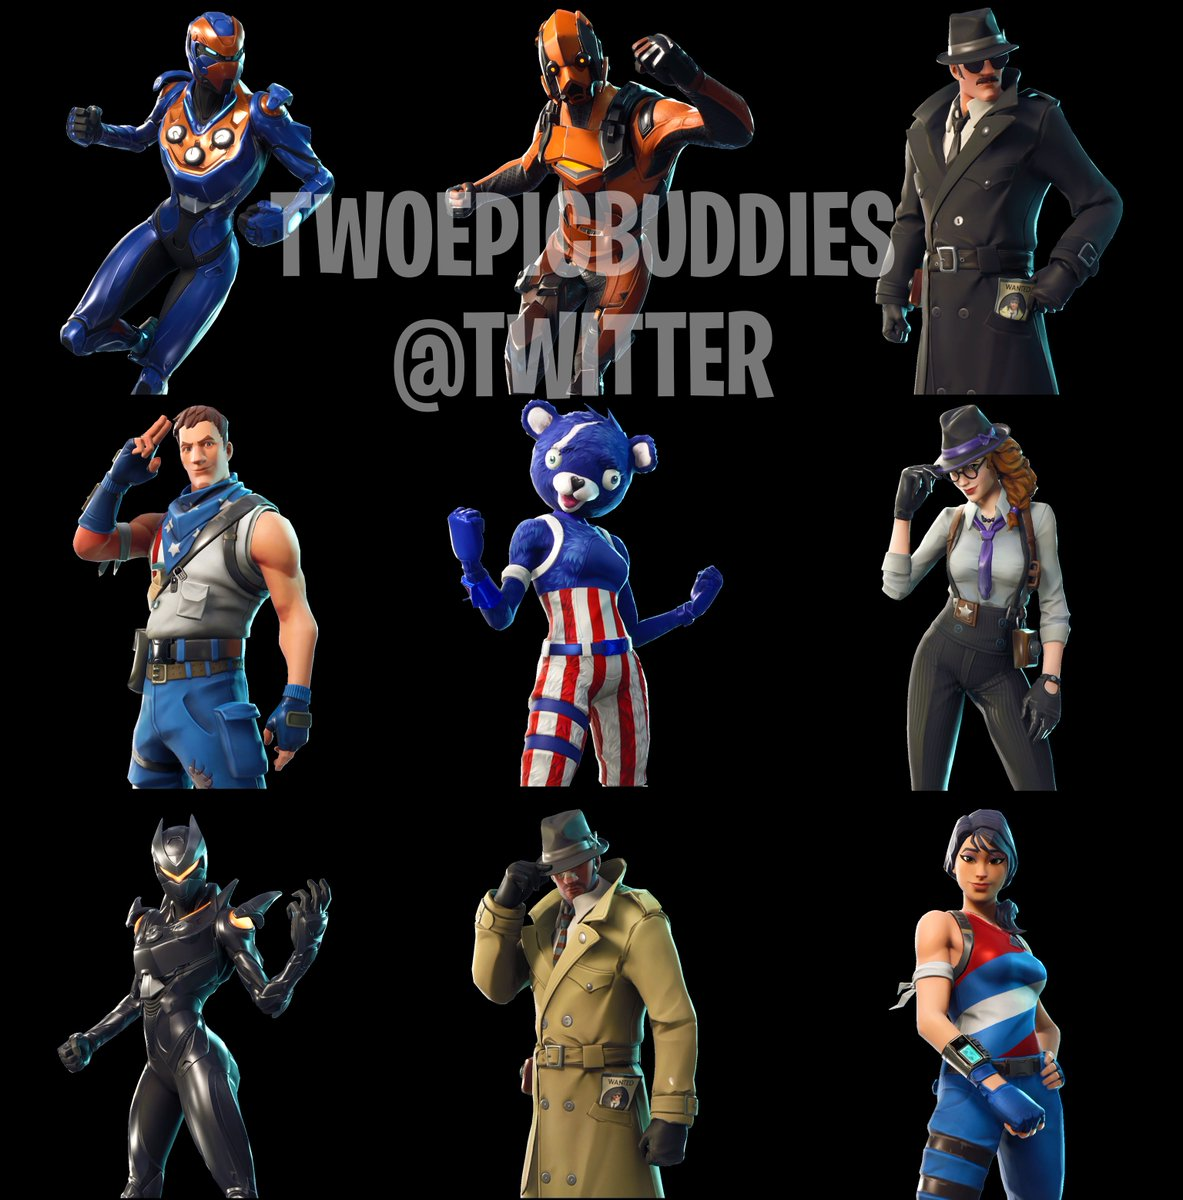 TwoEpicBuddies Has Leaked New and Upcoming Fortnite Skins and Cosmetics